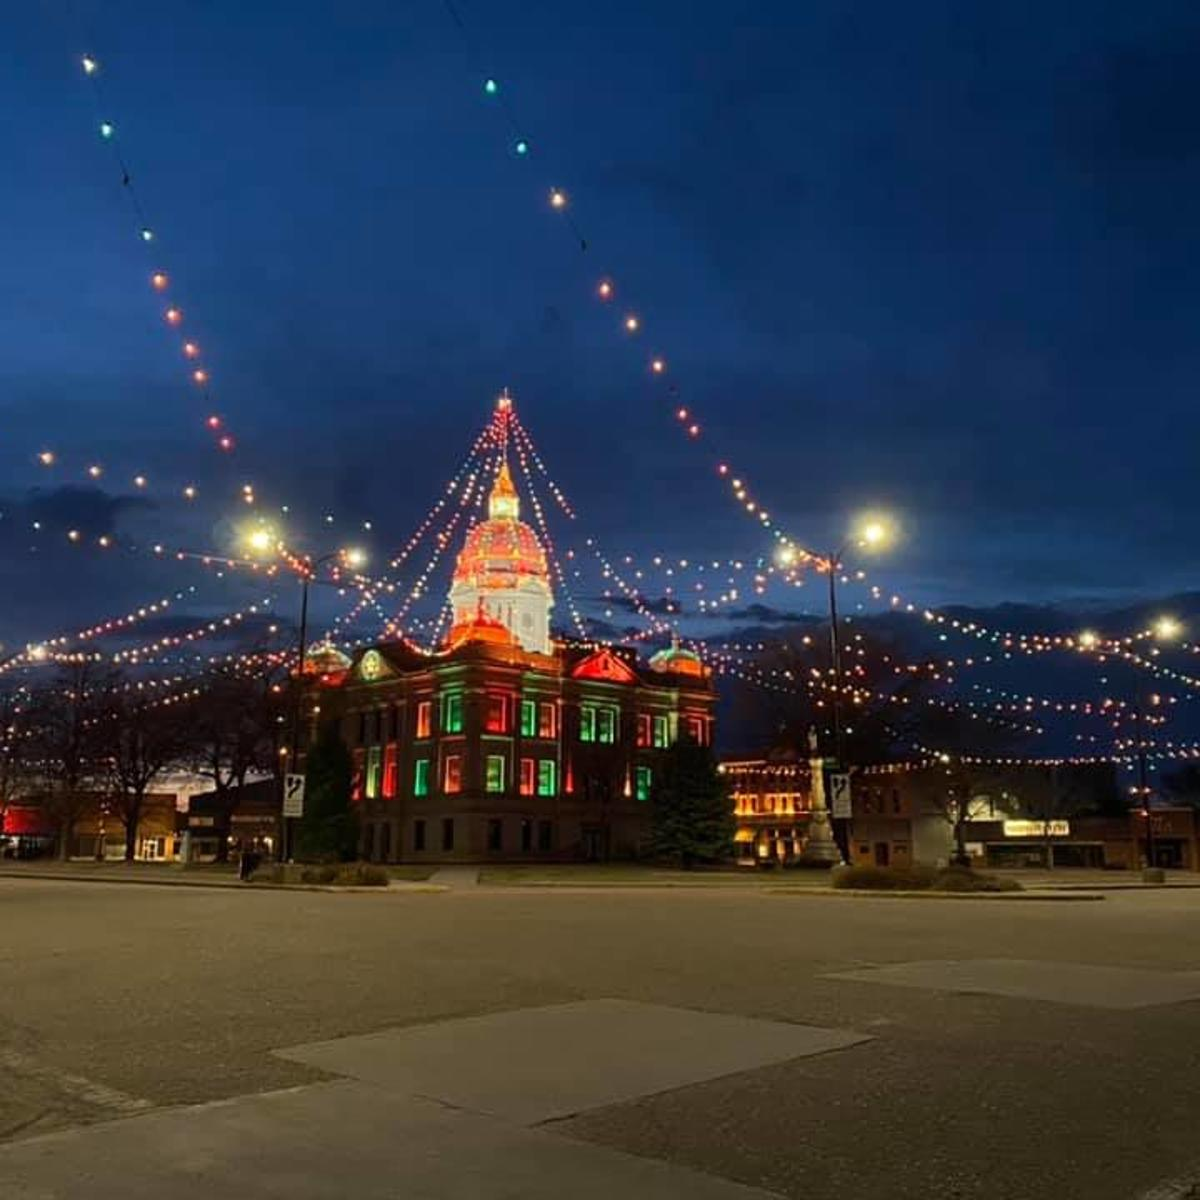 Lincoln Nebraska Christmas Lights 2021 Minden Turns On Christmas Lights A Symbol Of Hope In The Midst Of A Pandemic Local News Kearneyhub Com